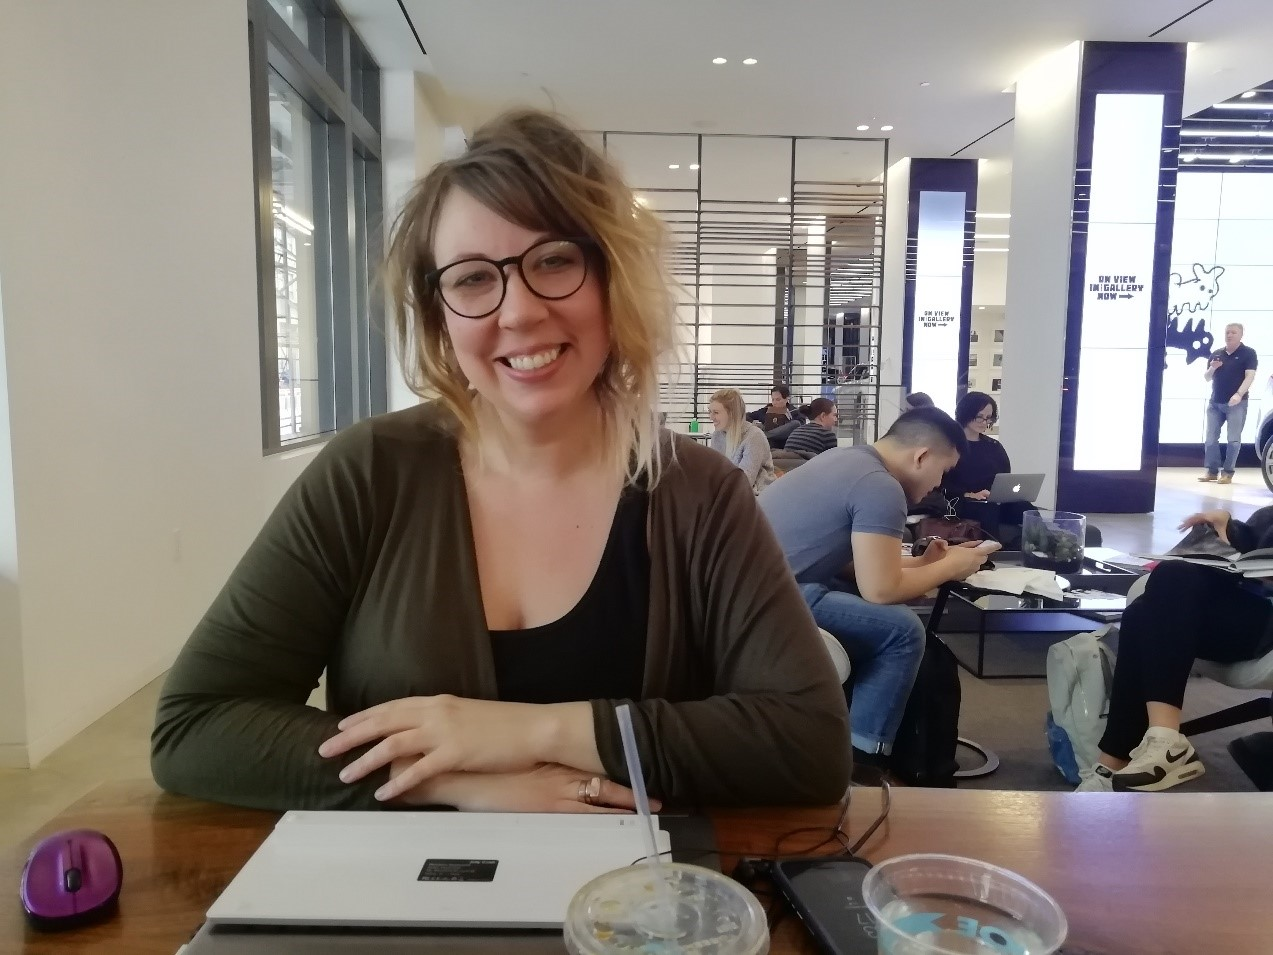 Life as a Freelancer – an interview with Jenni Beckstrom